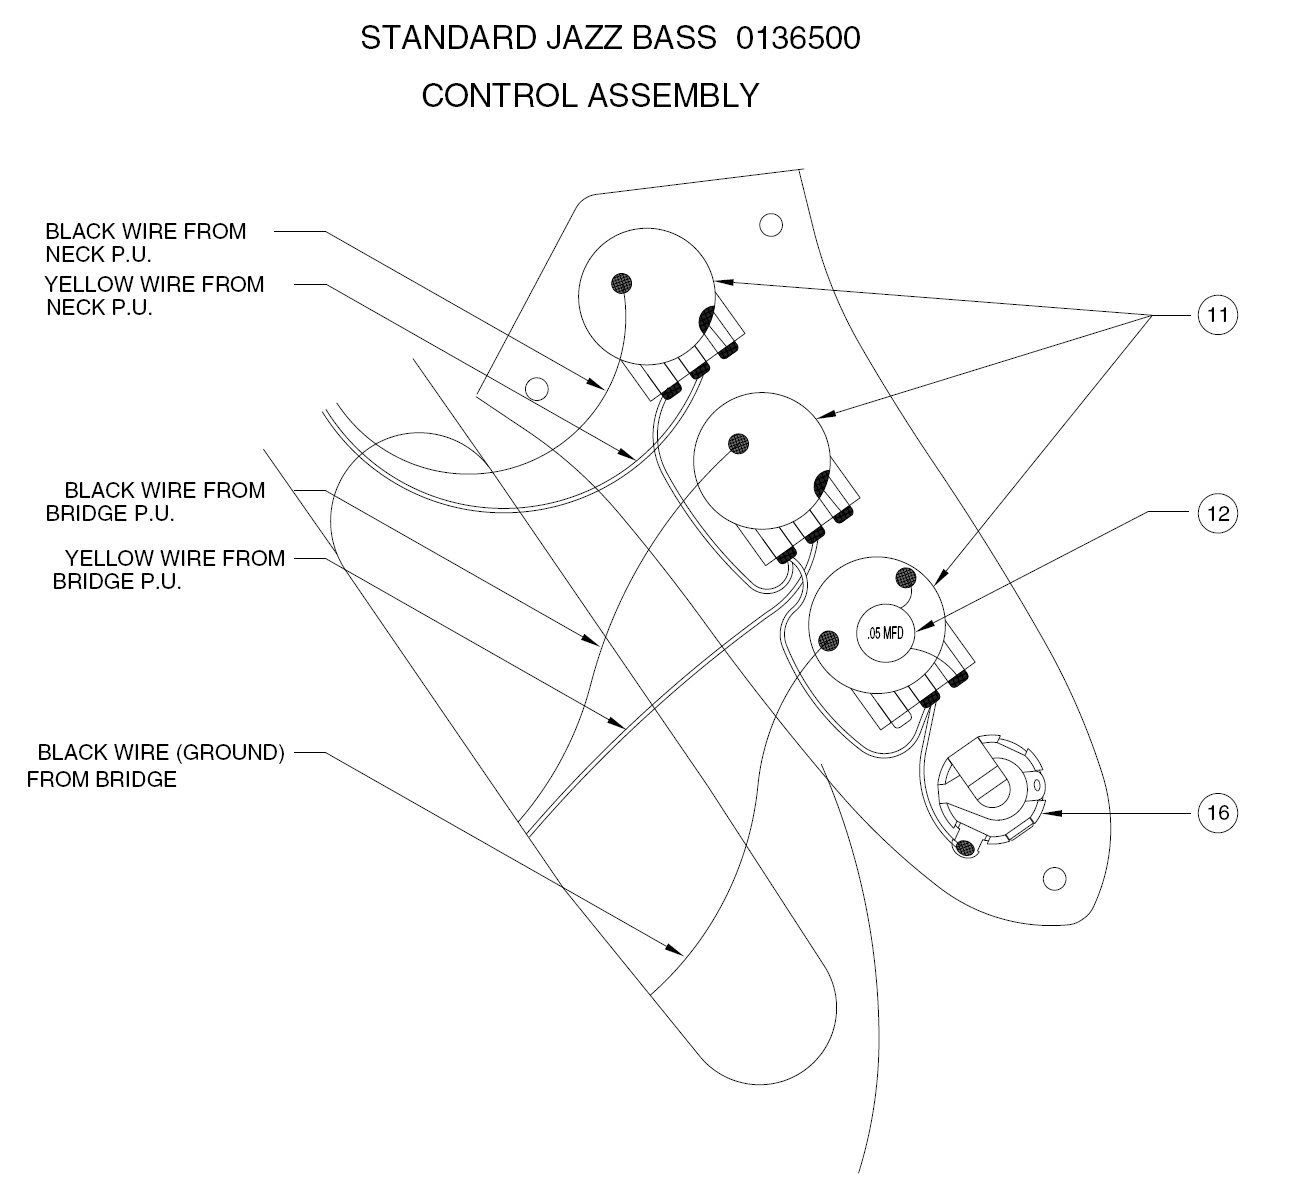 Fender Bass Wiring Diagram from lh6.googleusercontent.com